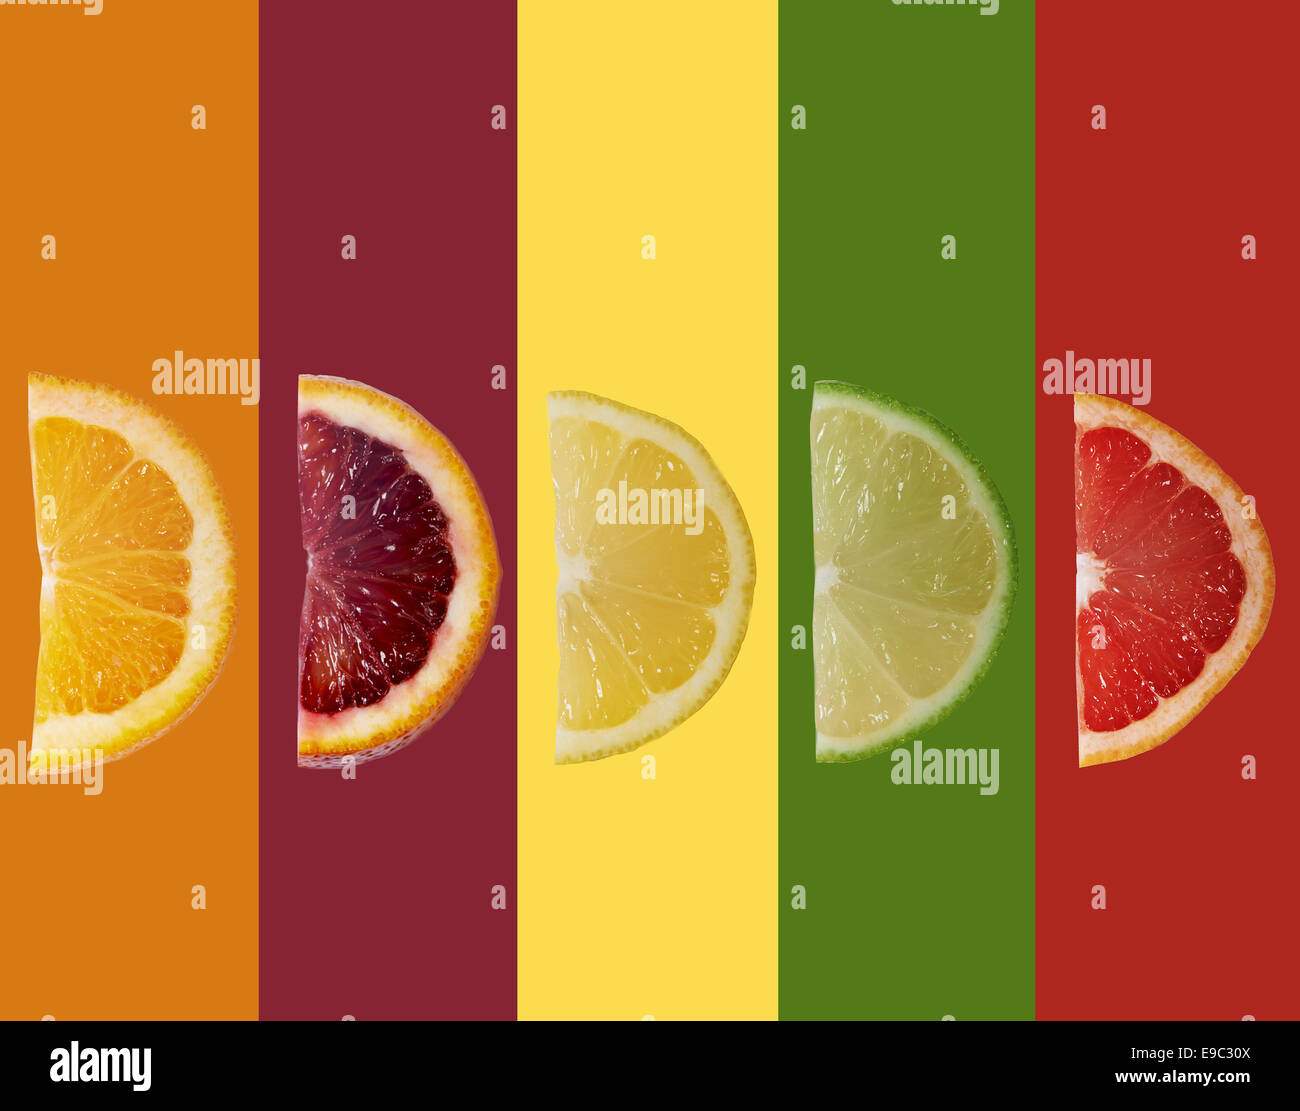 Different citrus fruits lined up in a colorful arrangement - Stock Image